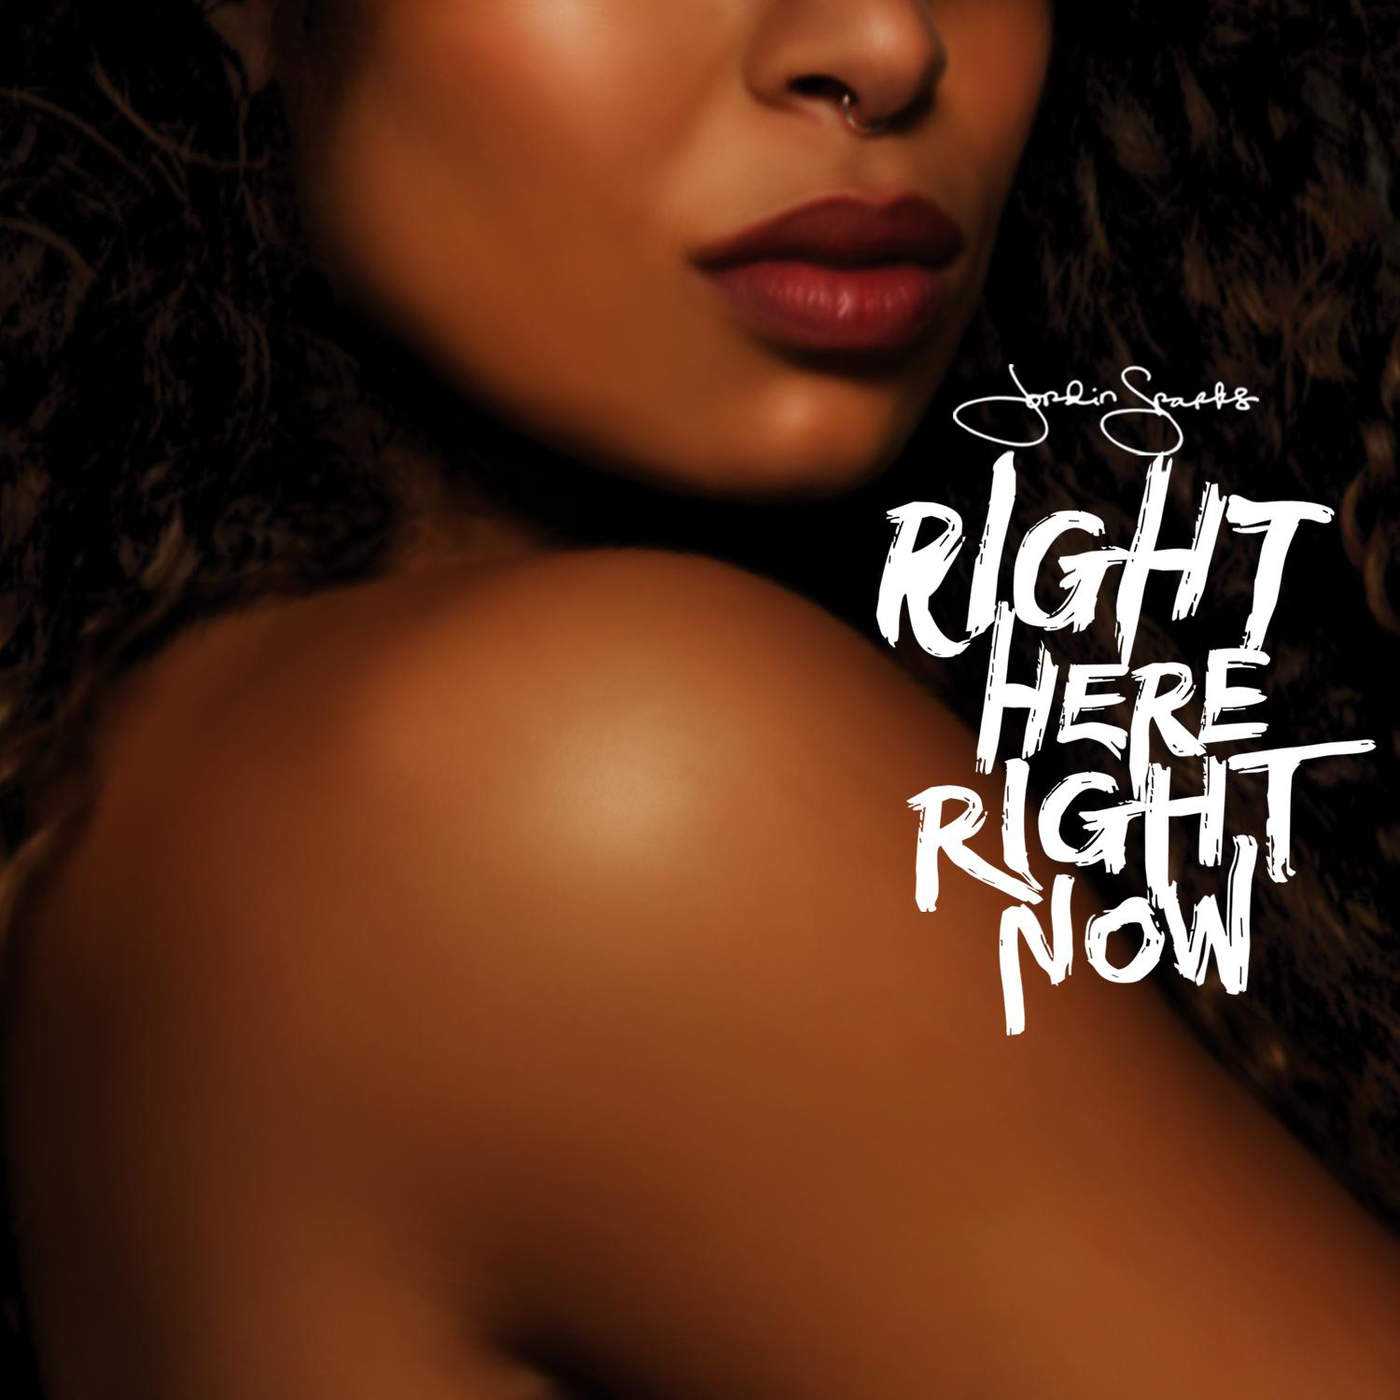 Jordin Sparks - Right Here Right Now Cover